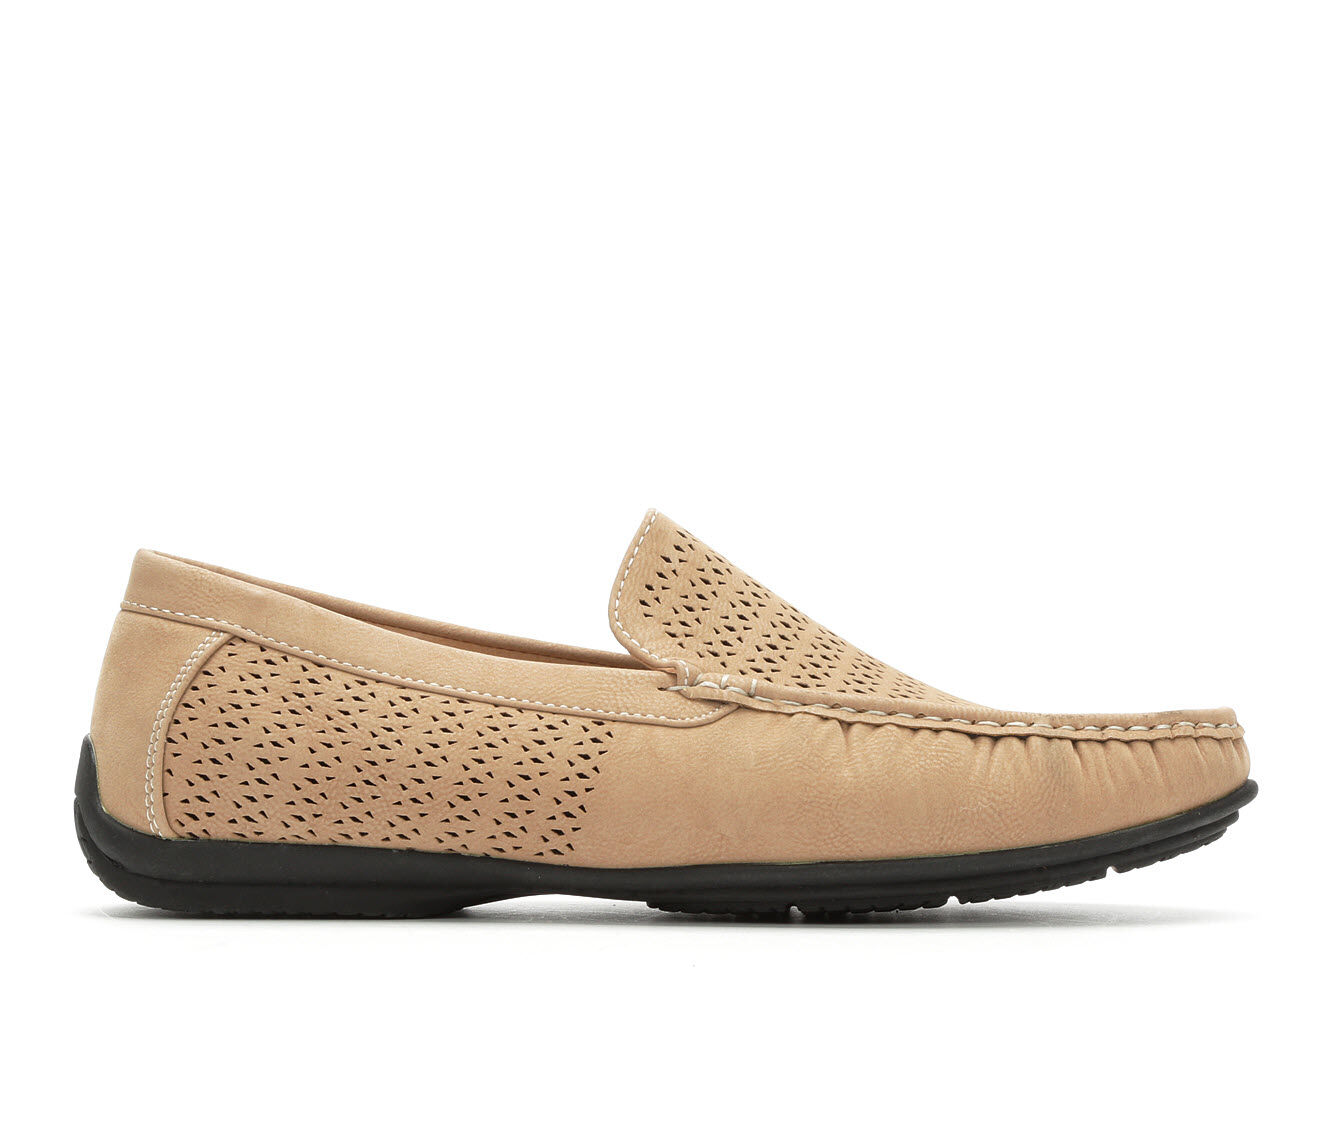 Men's Stacy Adams Cicero Loafers Taupe